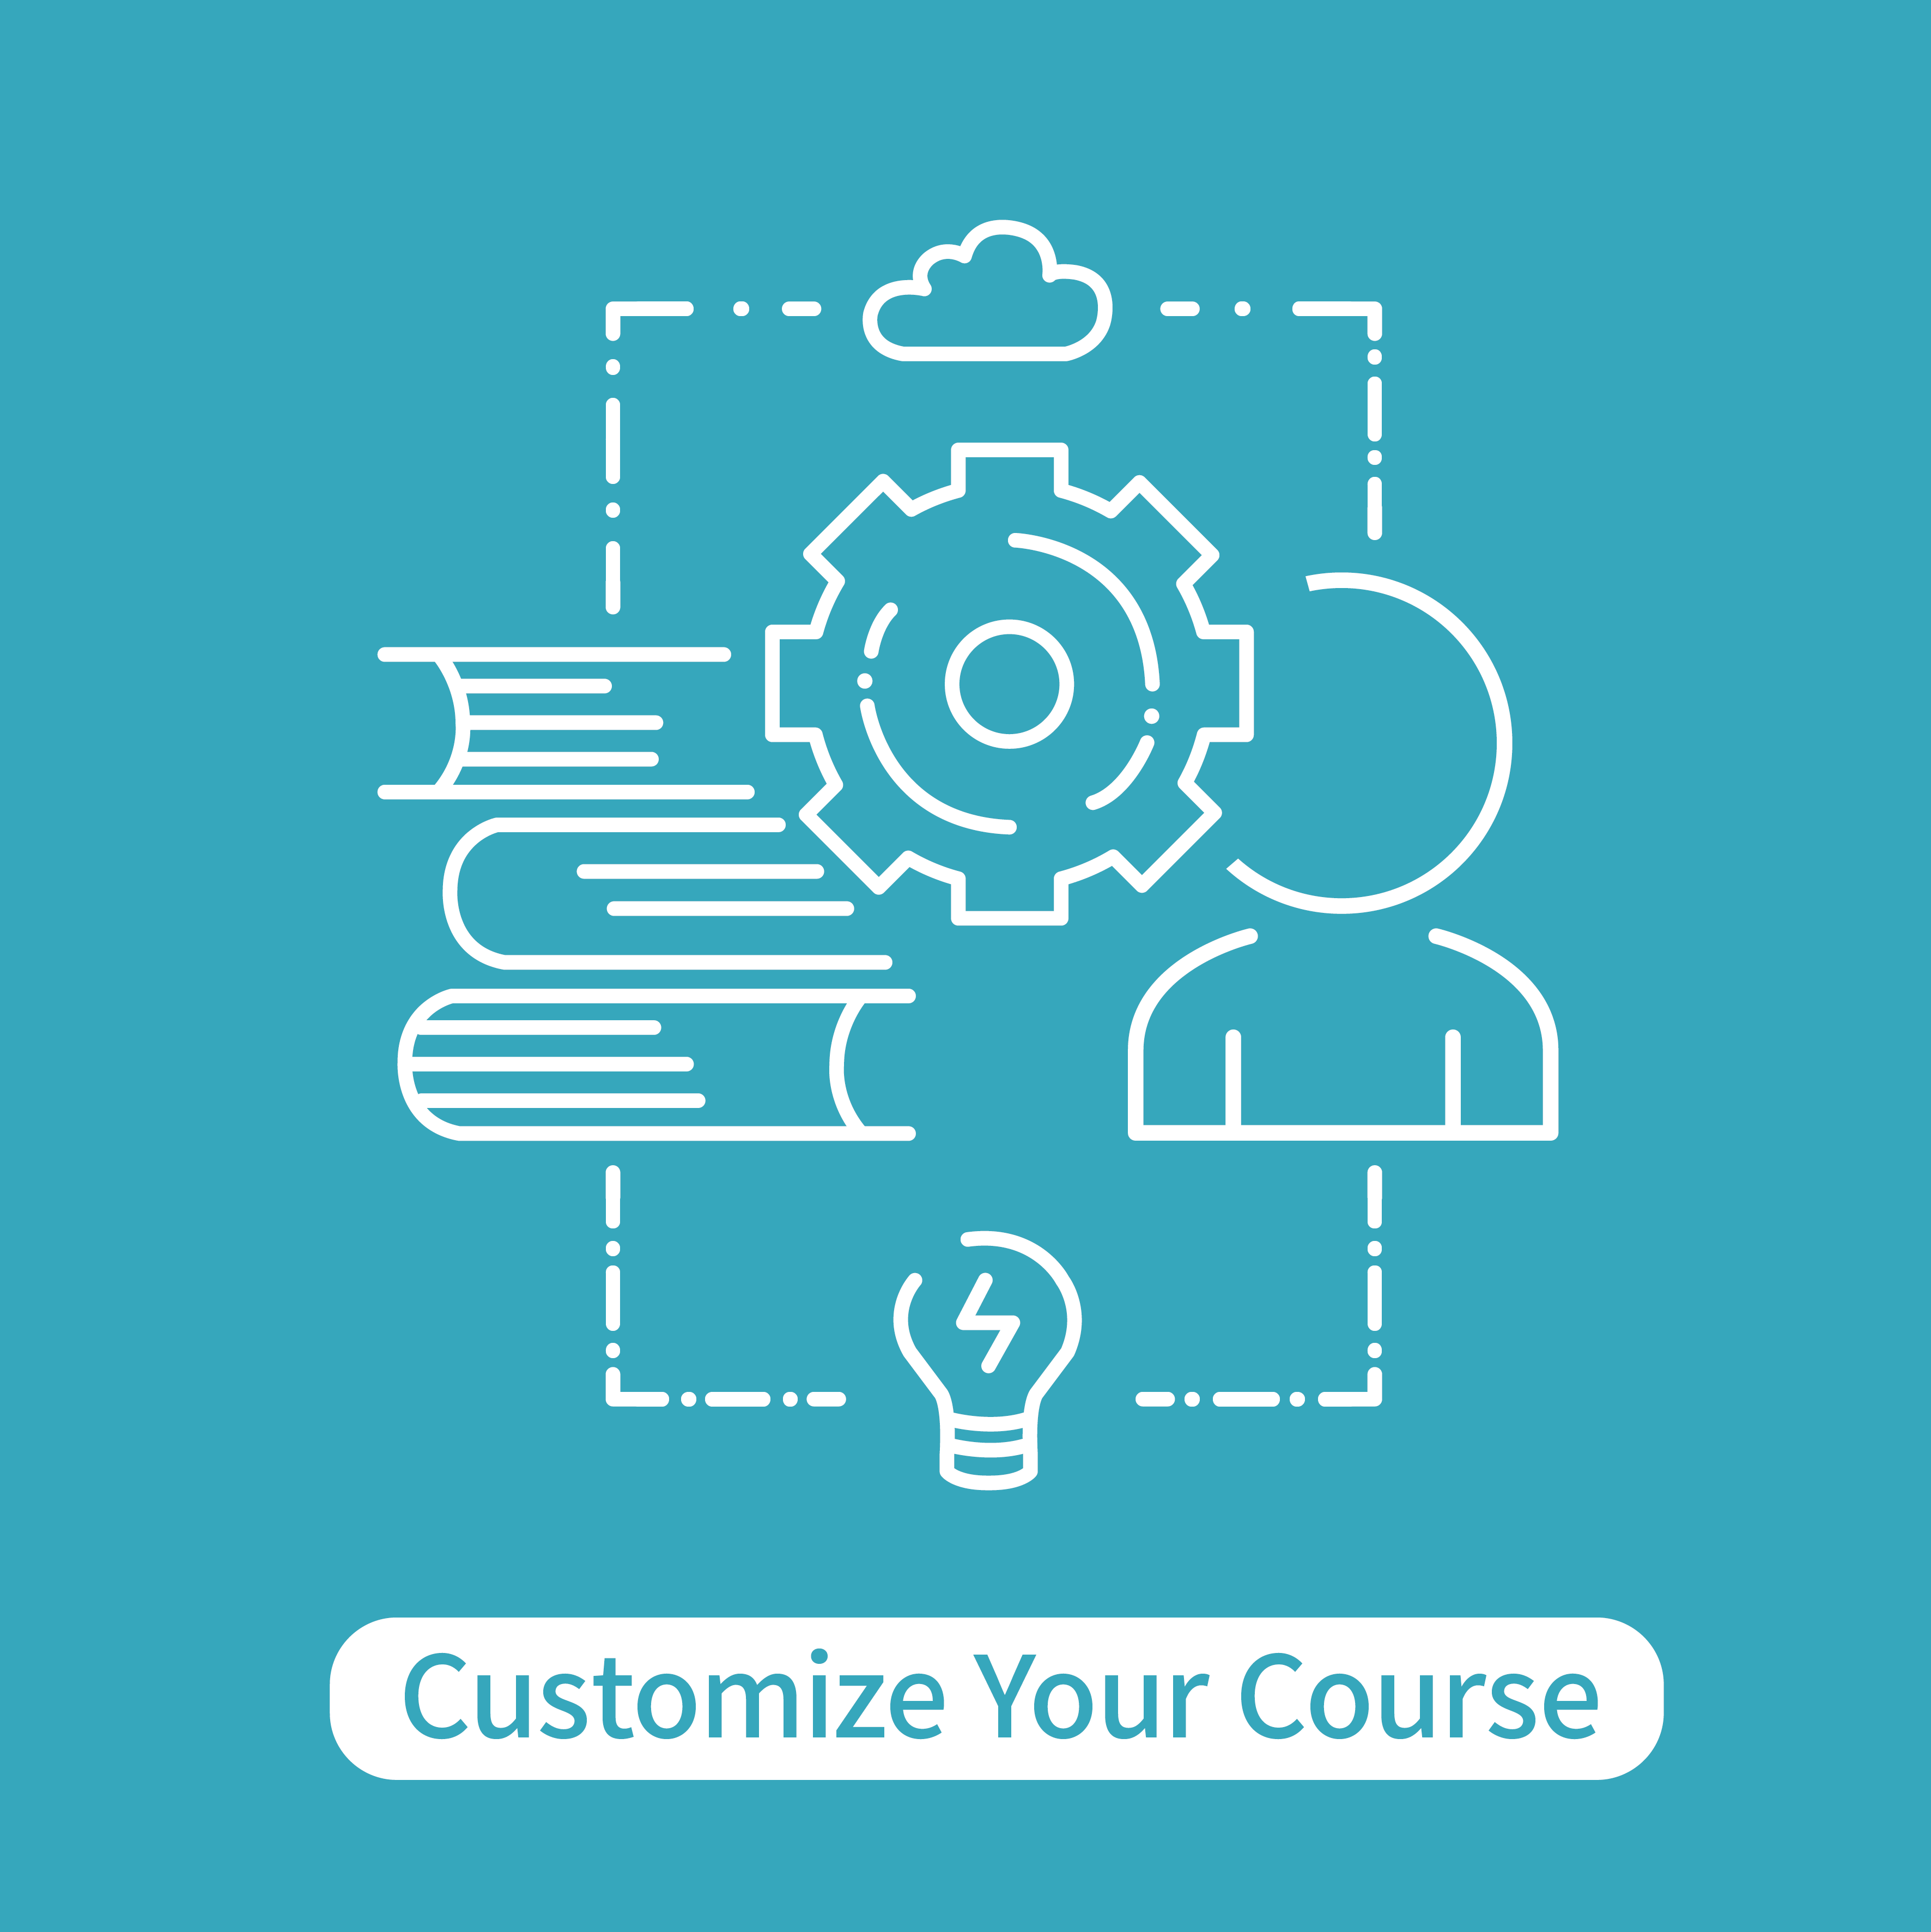 customize your course